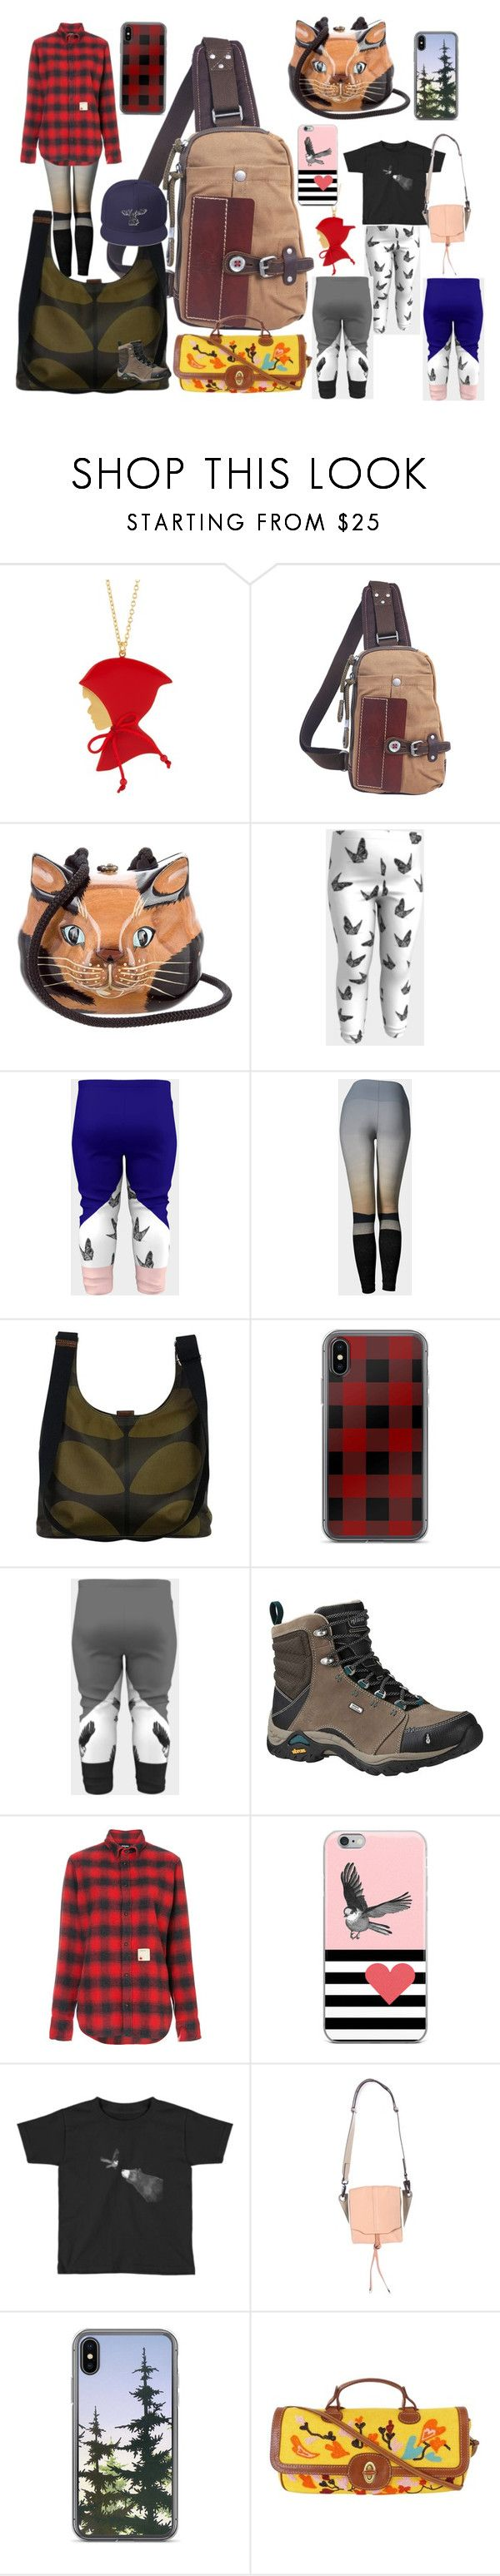 """""""I need some woods time"""" by adanacmom ❤ liked on Polyvore featuring Les Néréides, TSD, Timmy Woods, Orla Kiely, Ahnu, Dsquared2, rag & bone, Missoni, travel and phonecase"""